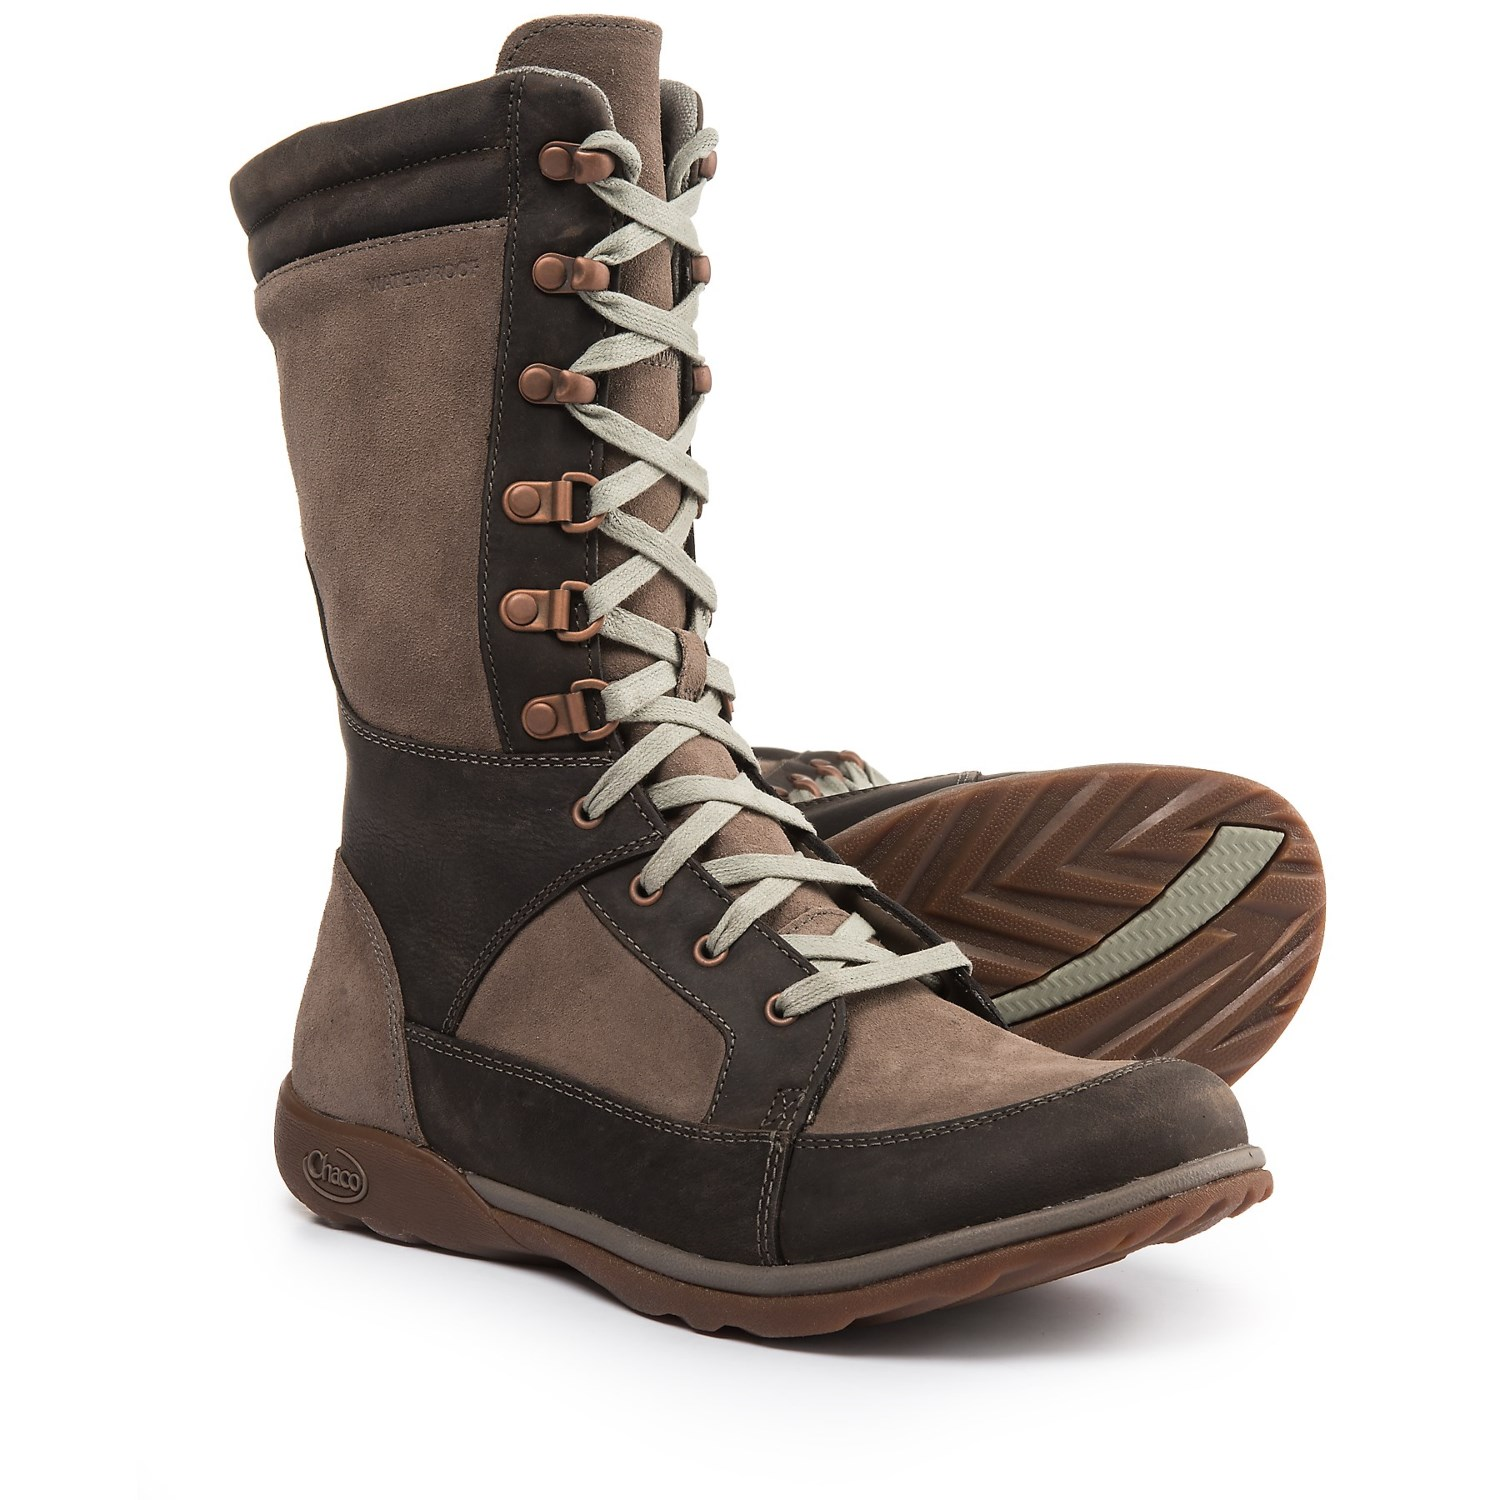 4e69c70e1c7 Chaco Lodge Boots - Waterproof, Leather (For Women)